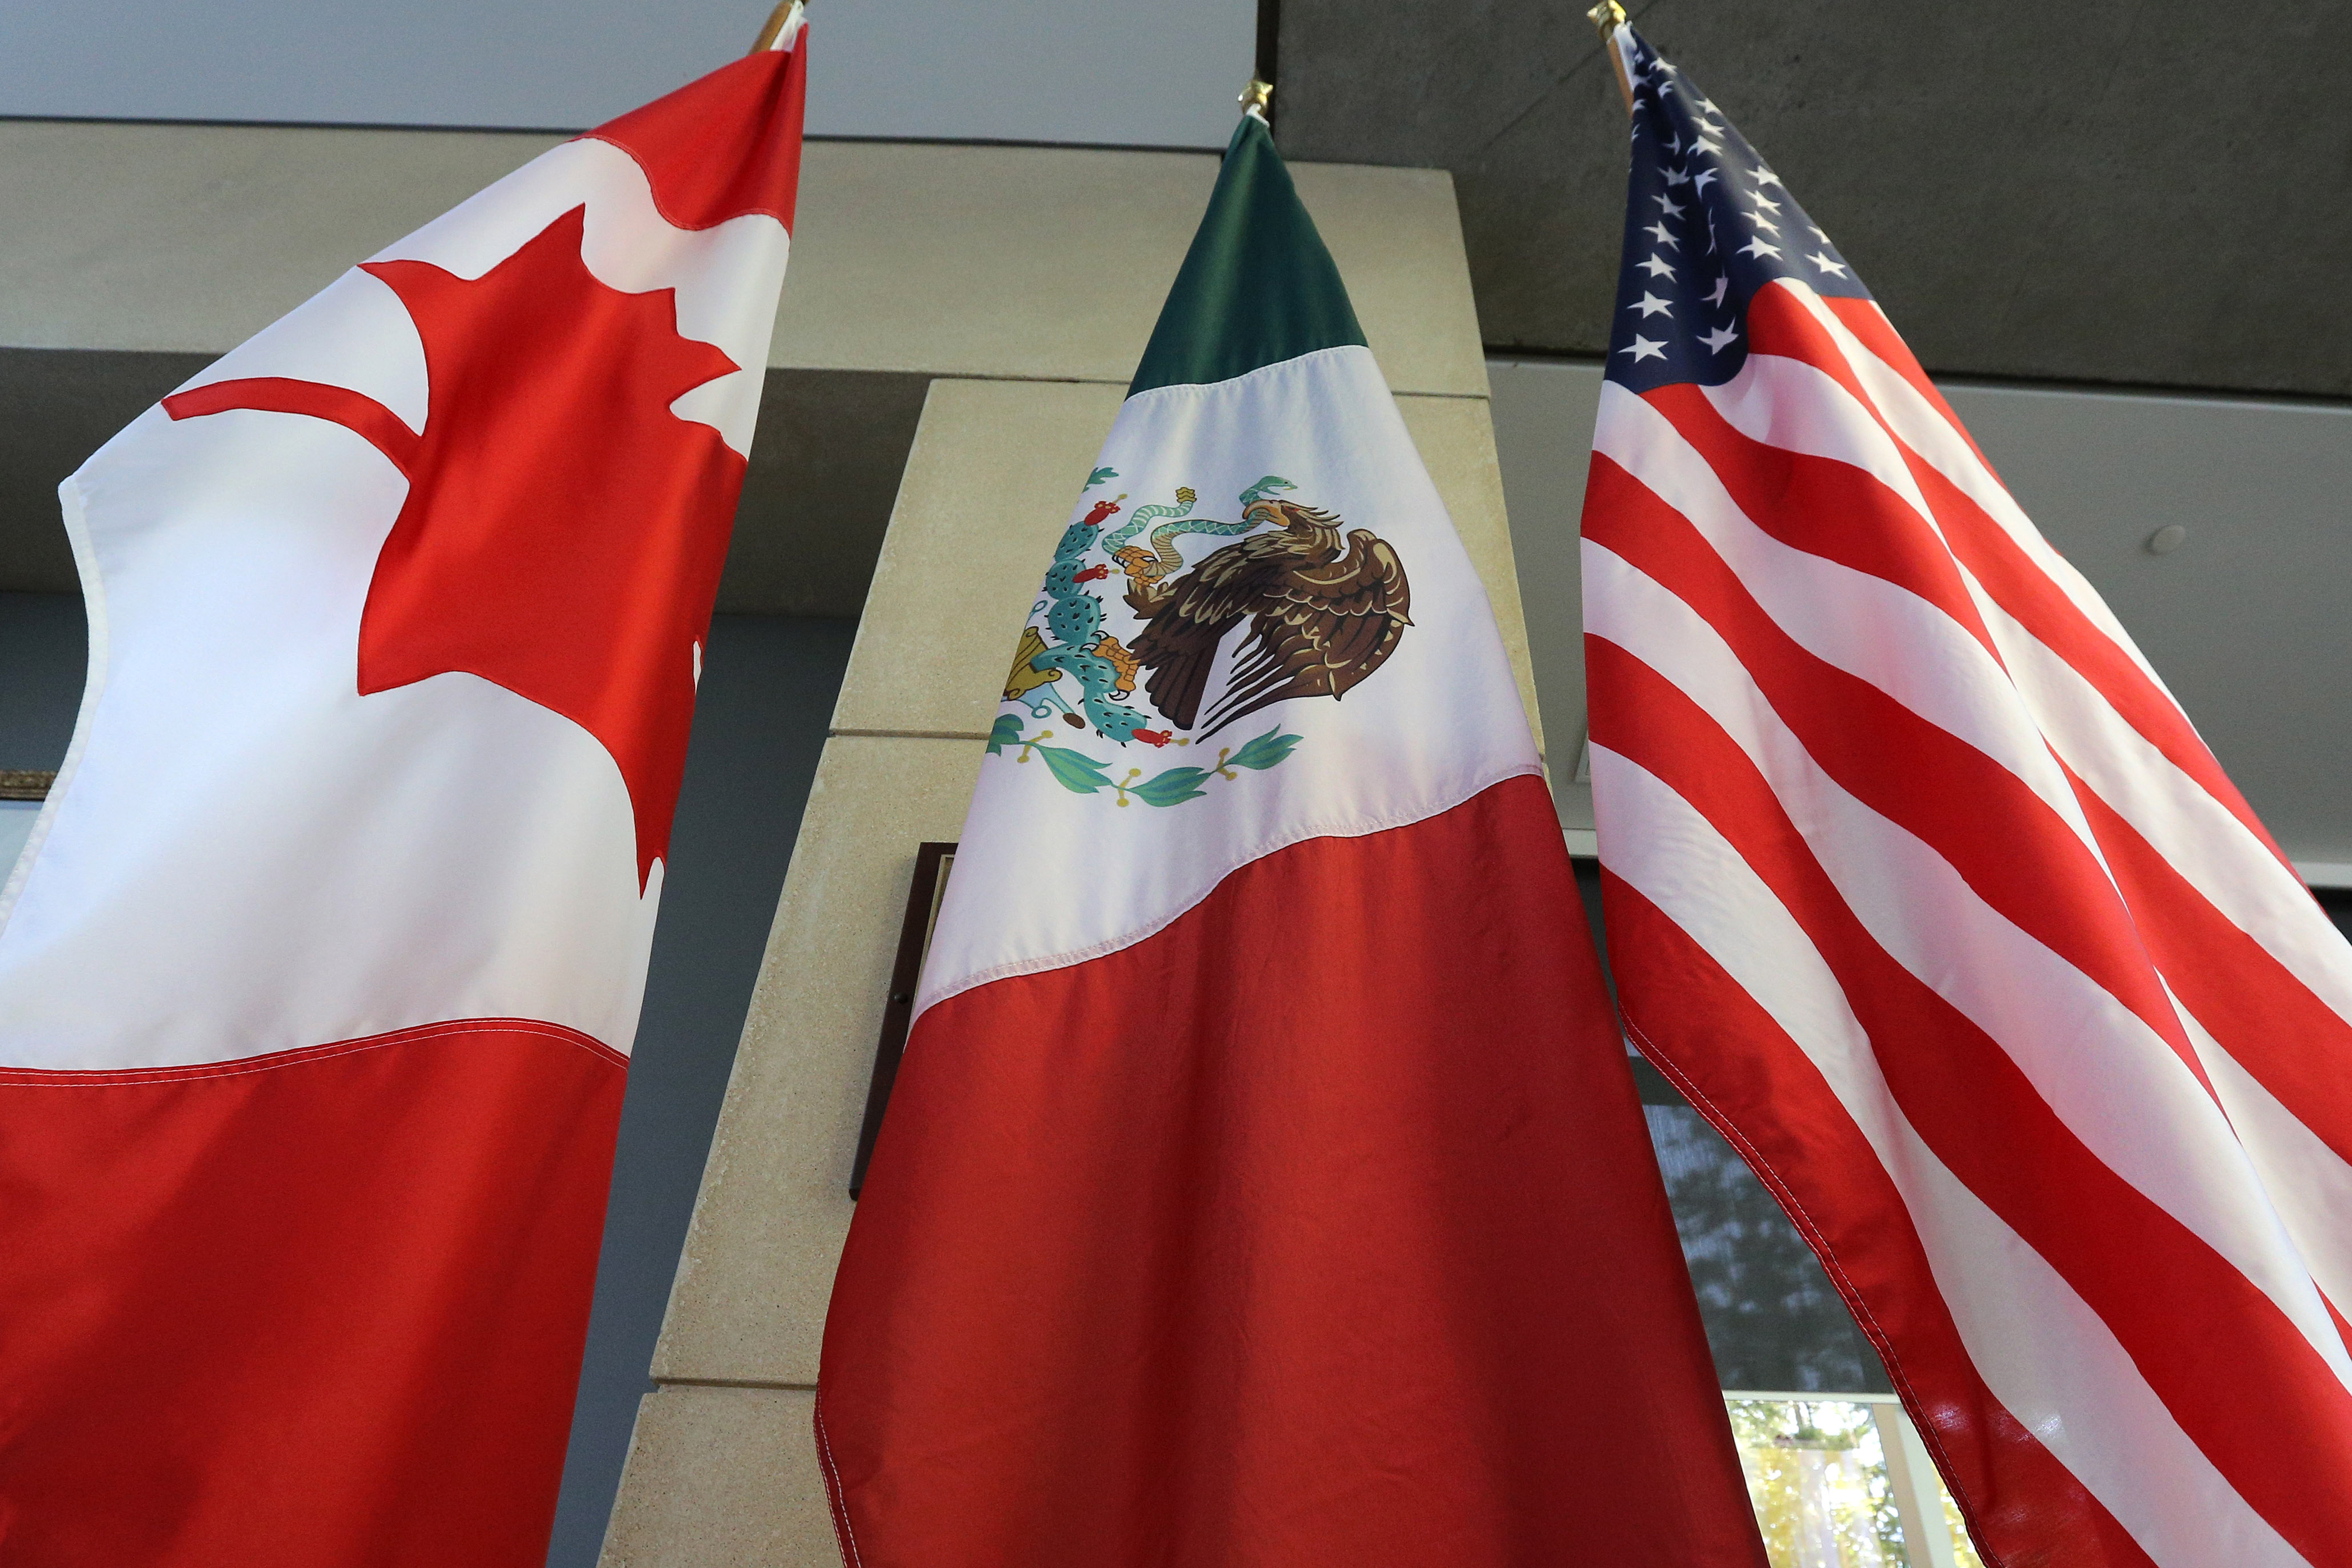 nafta-flags.jpg